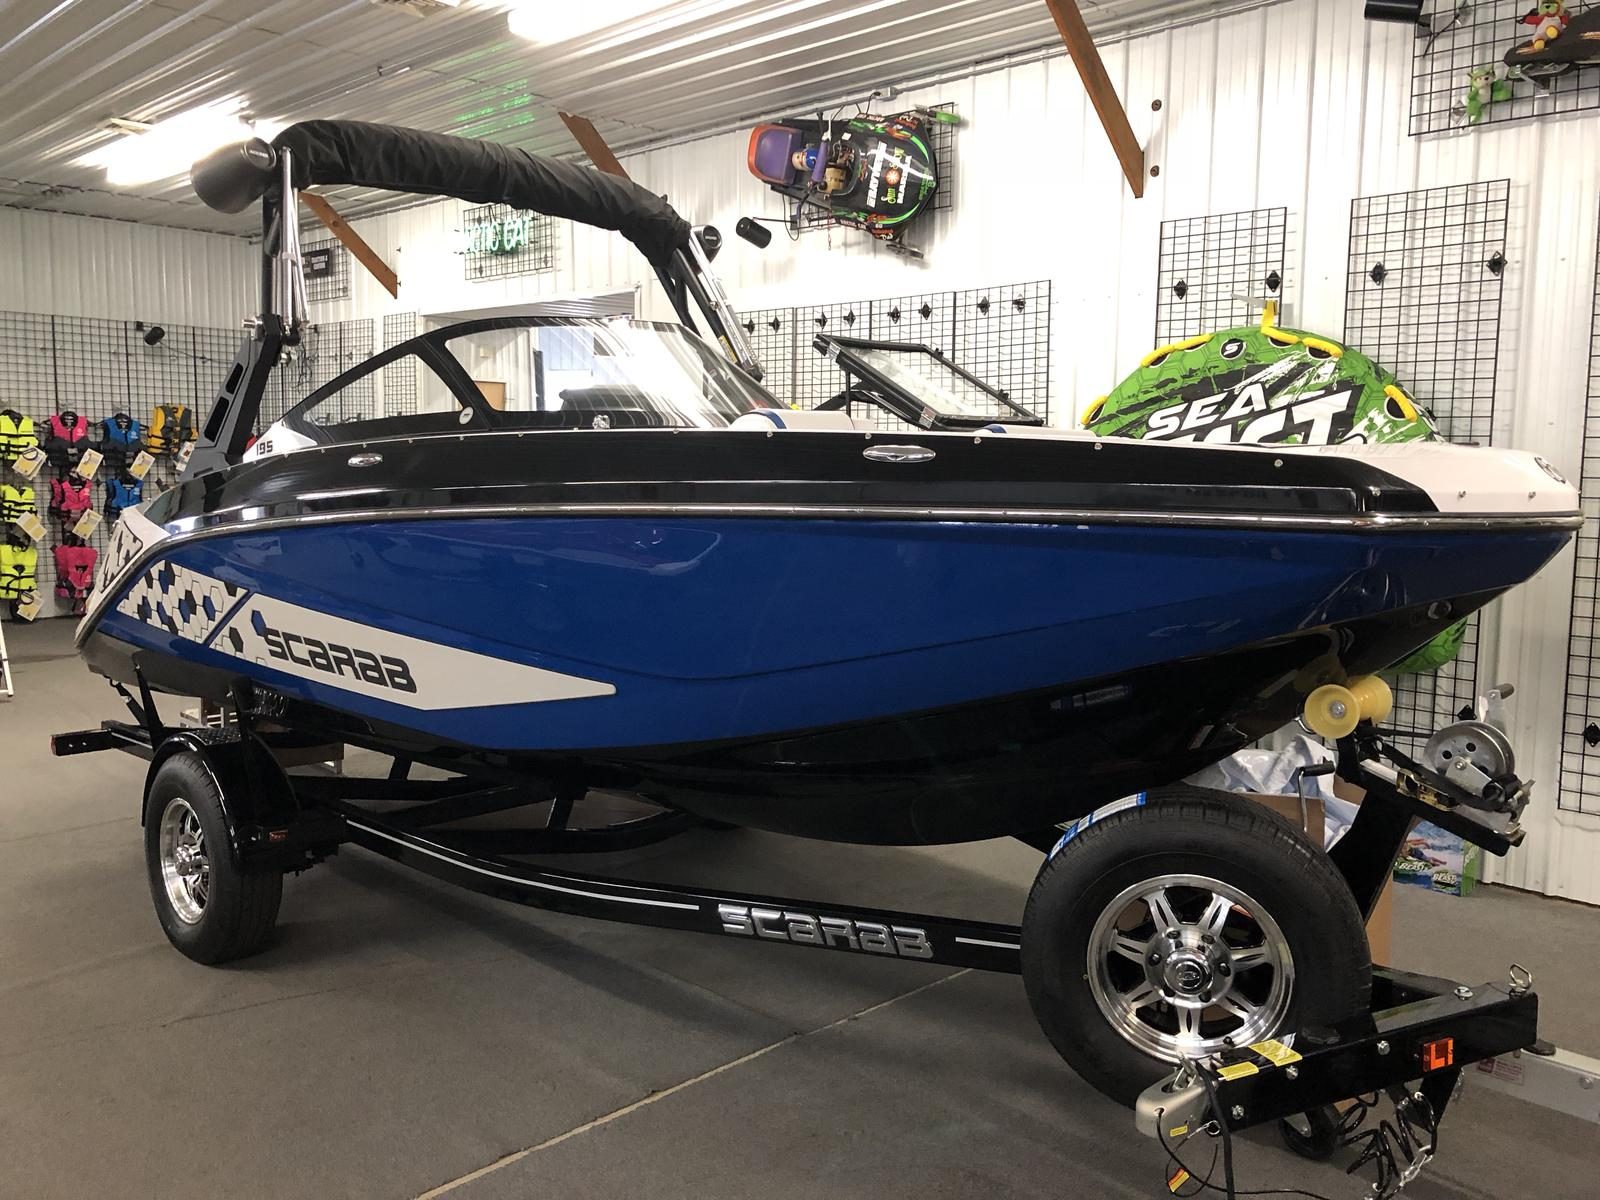 2018 Scarab 195 ID for sale in Celina, OH | Bayview Sun & Snow Marina (419)  268-2726